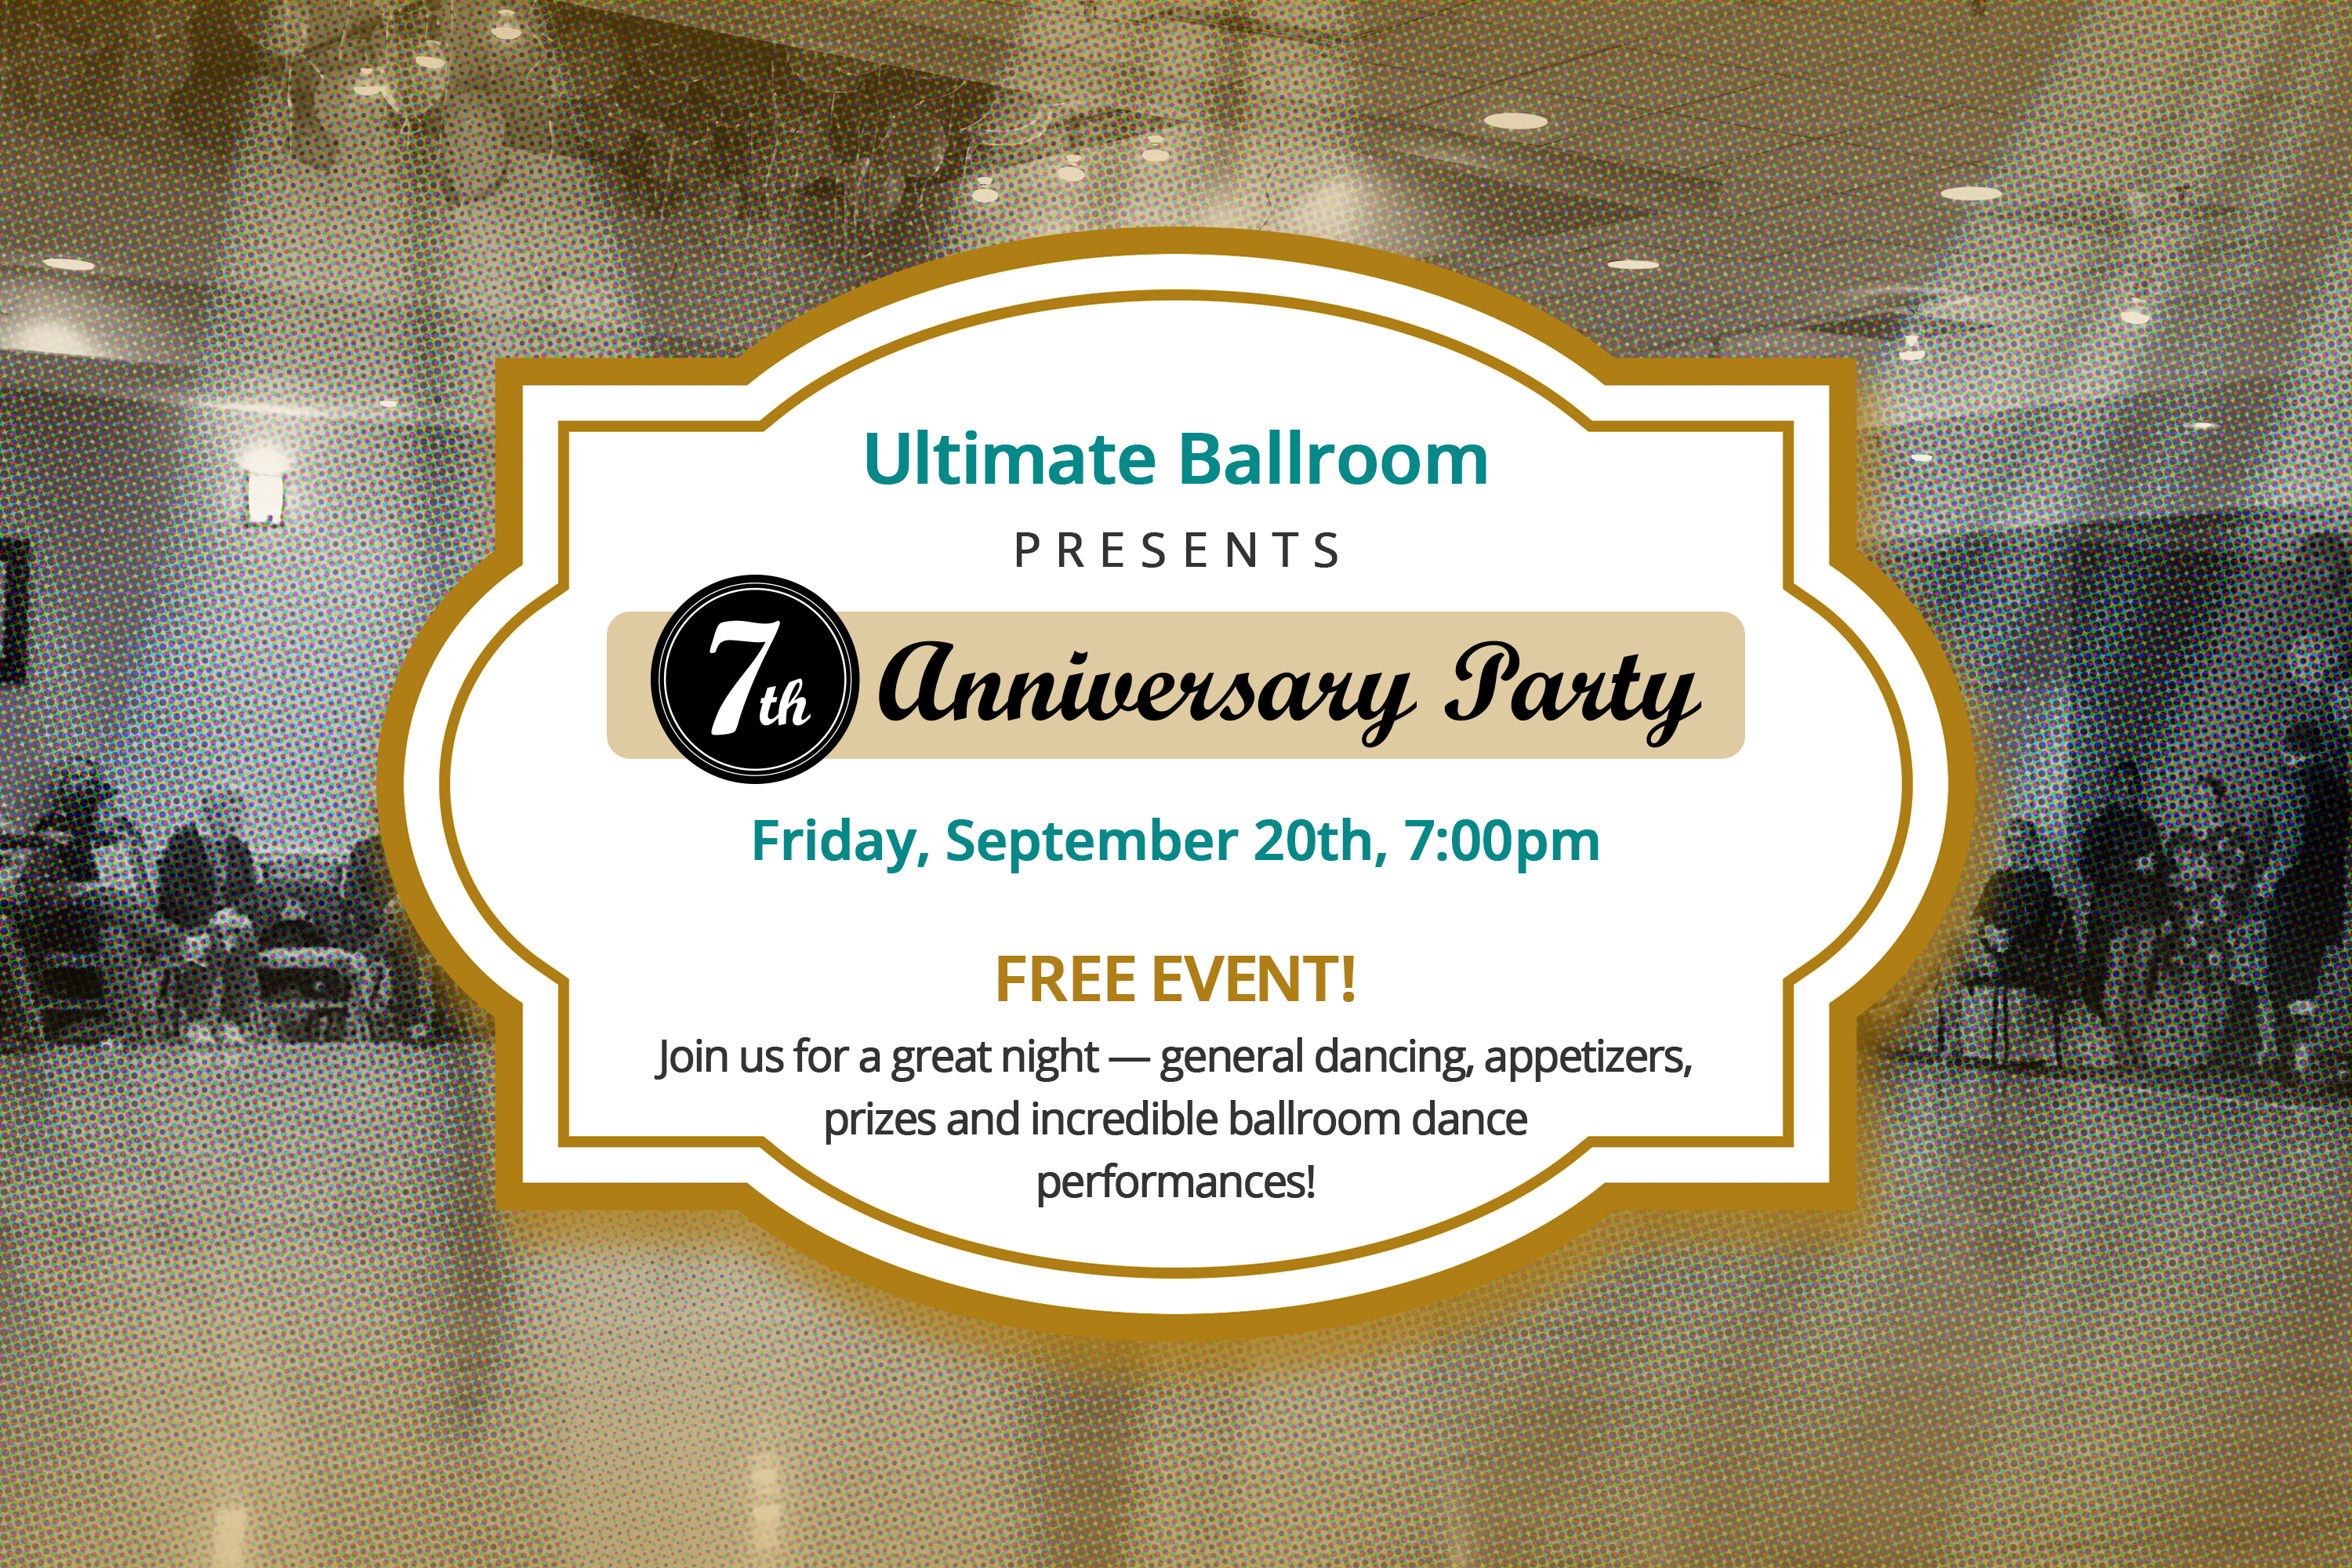 7-Year Anniversary Party